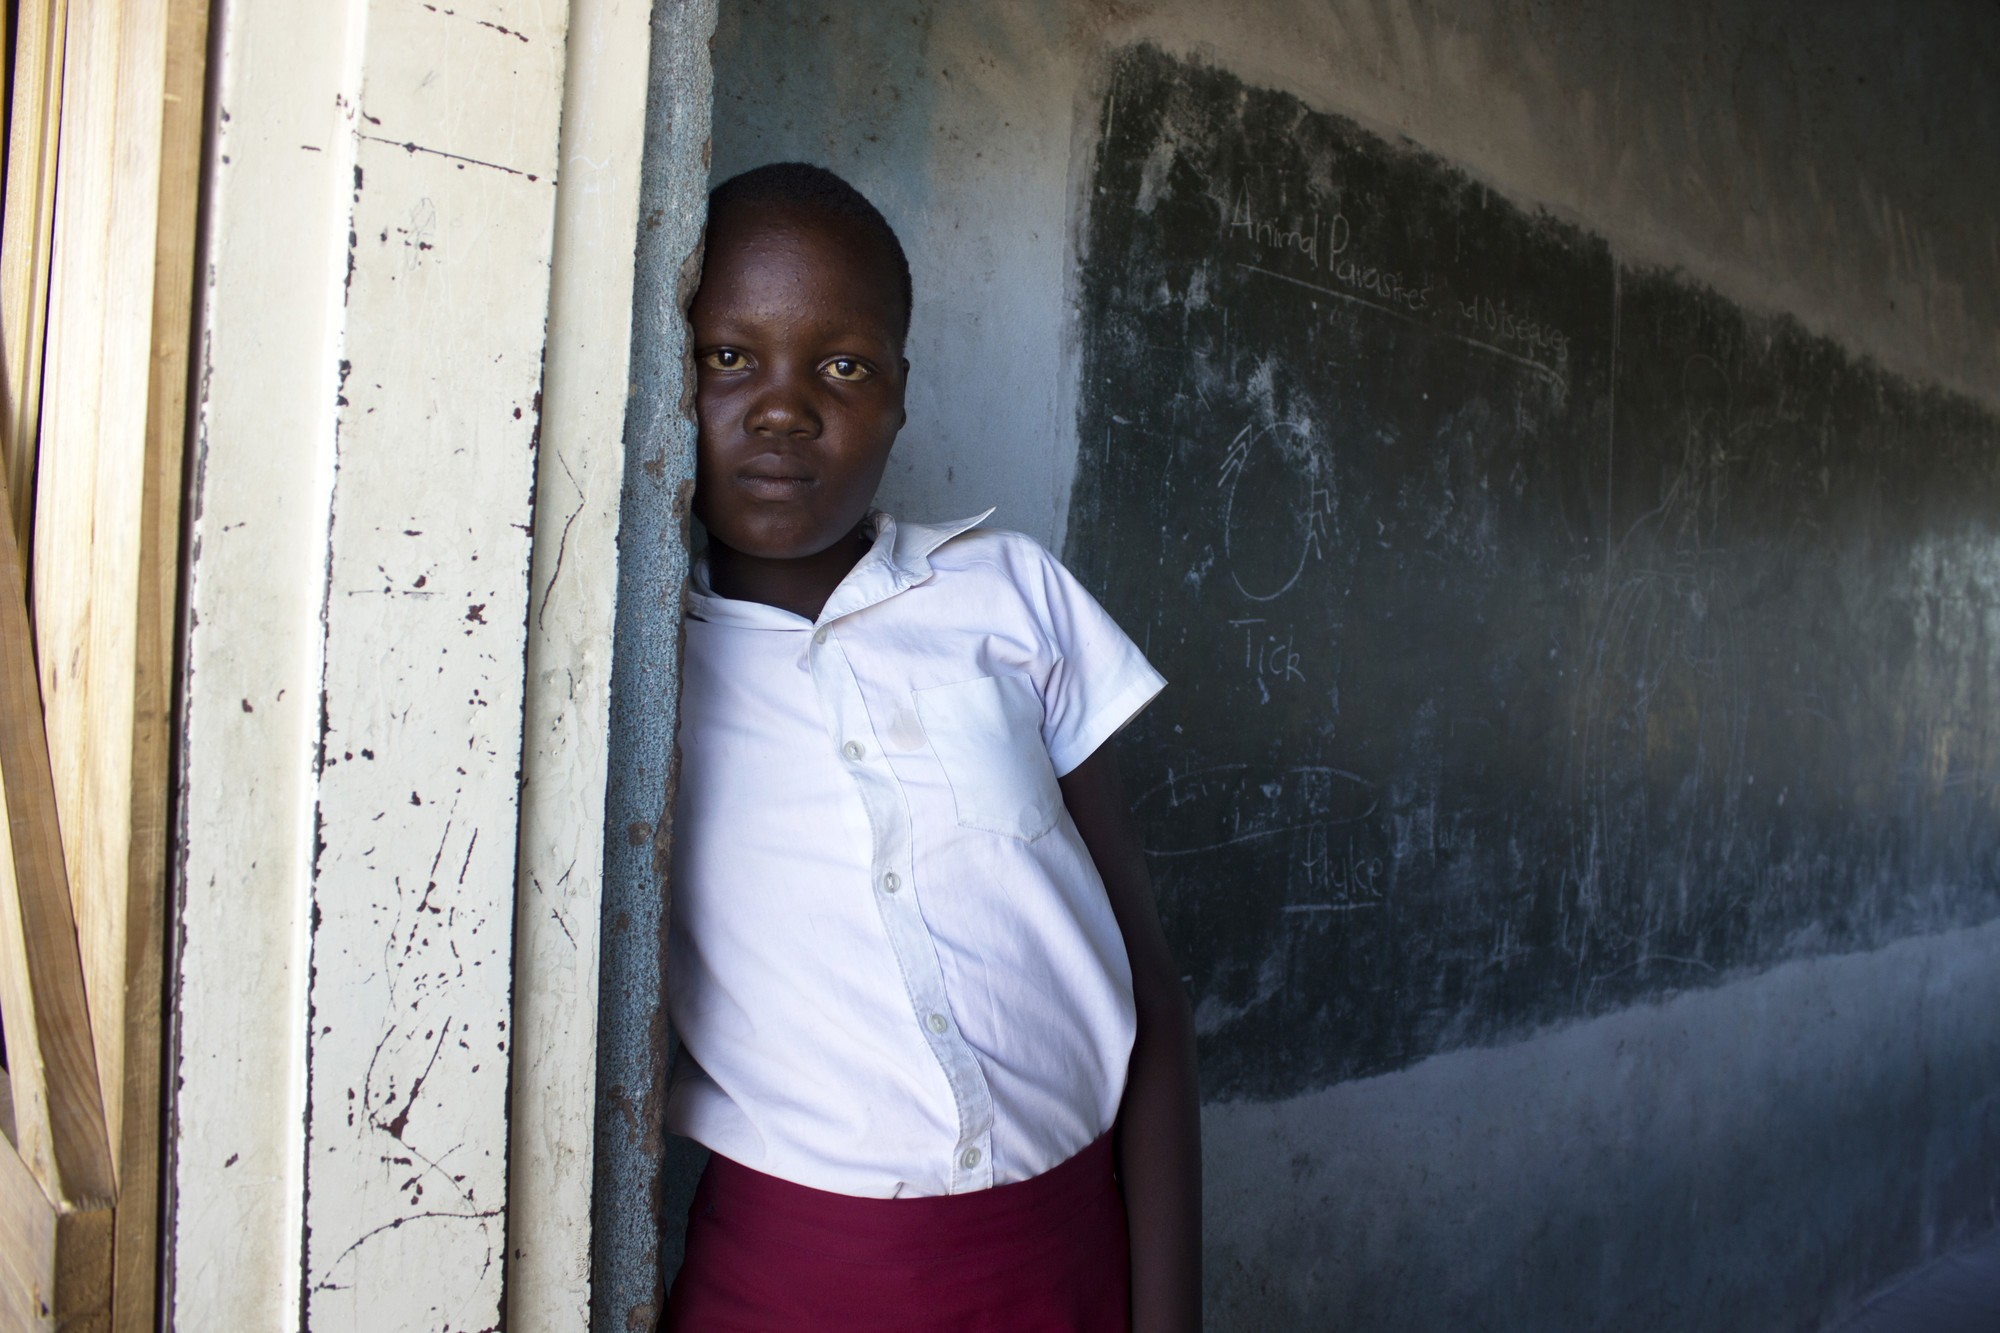 Beauty is weak by the time she walks all the way to school as she doesn't have enough to eat at home because of el nino droughts